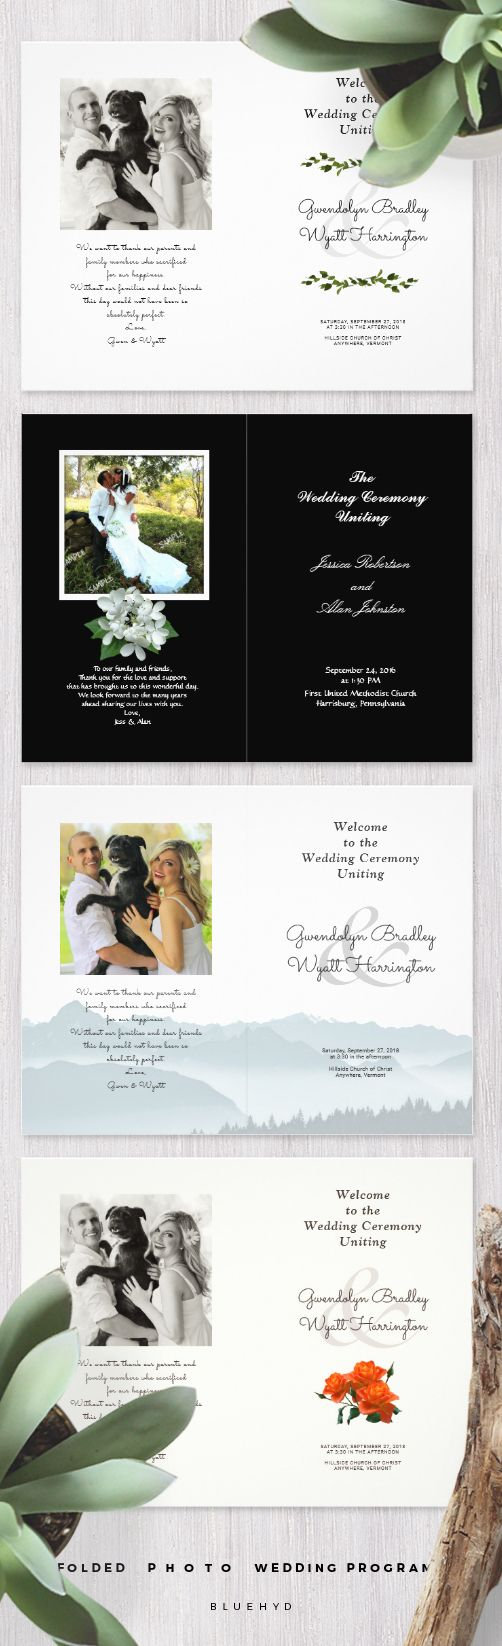 sending wedding invitations months before%0A Folded wedding program templates  with photo added to the back page   Customize   pages and fold after purchase  to create your own ceremony  programs in any